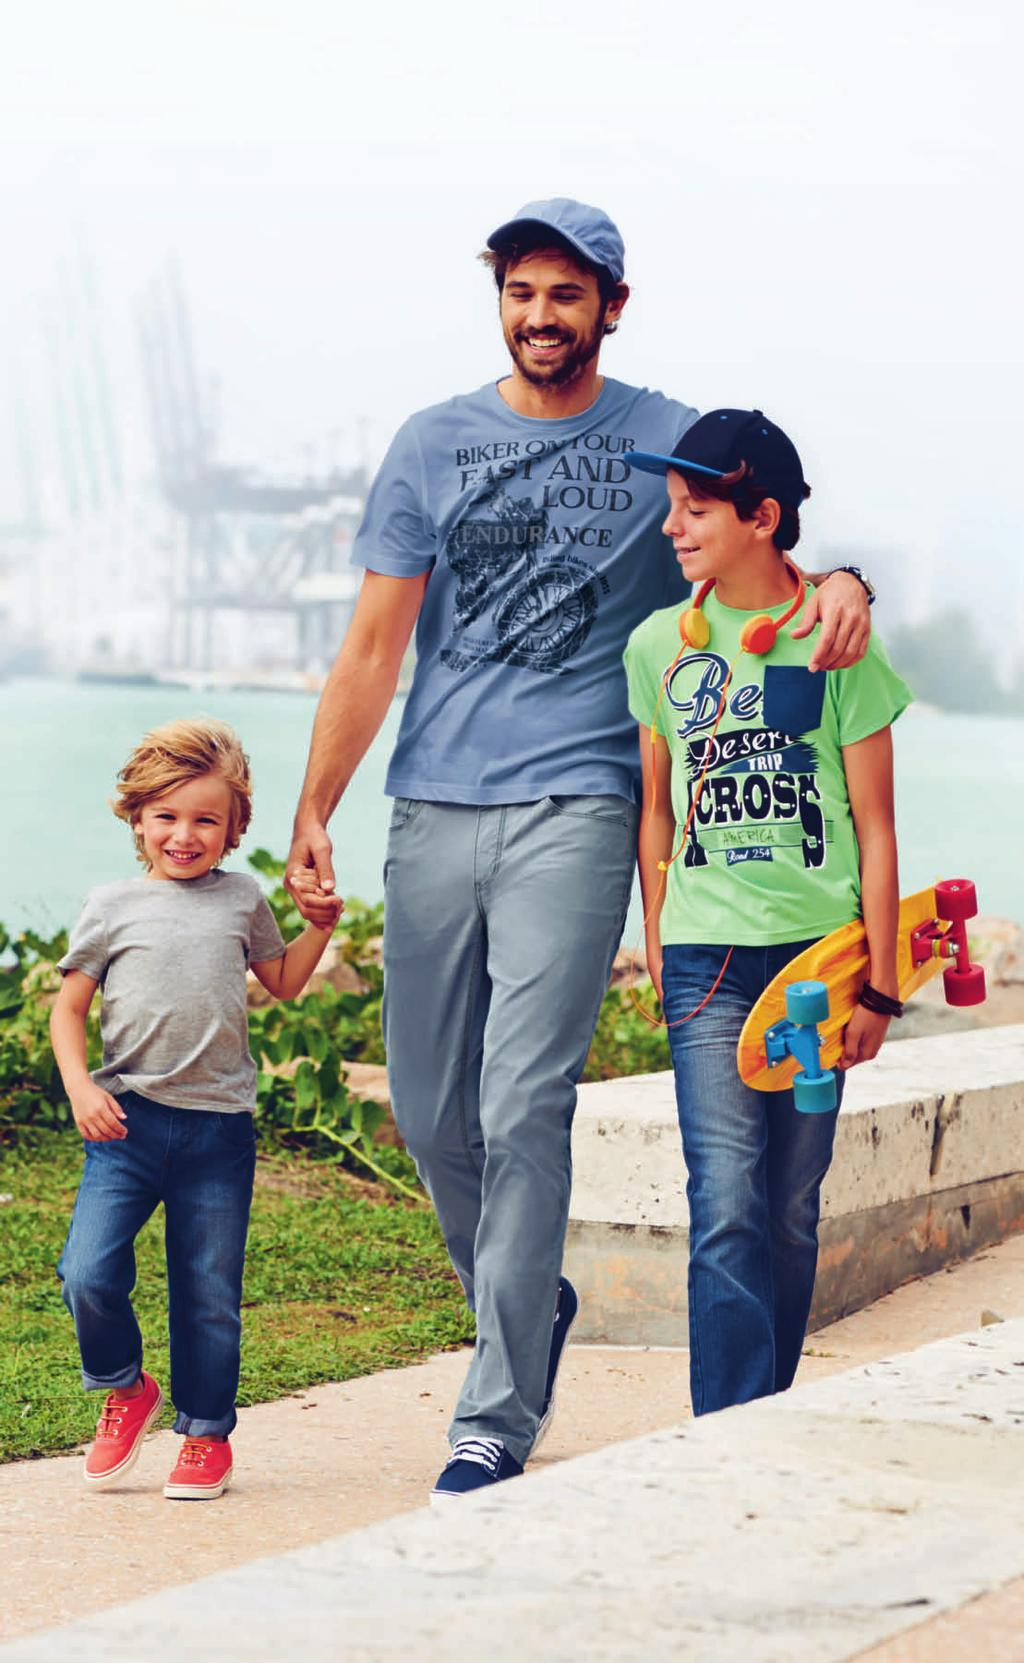 Mini Boys Gr. 92 128: Jeans 12.99 «Slim Fit», moderne Waschung, Mann: T-Shirt 9.